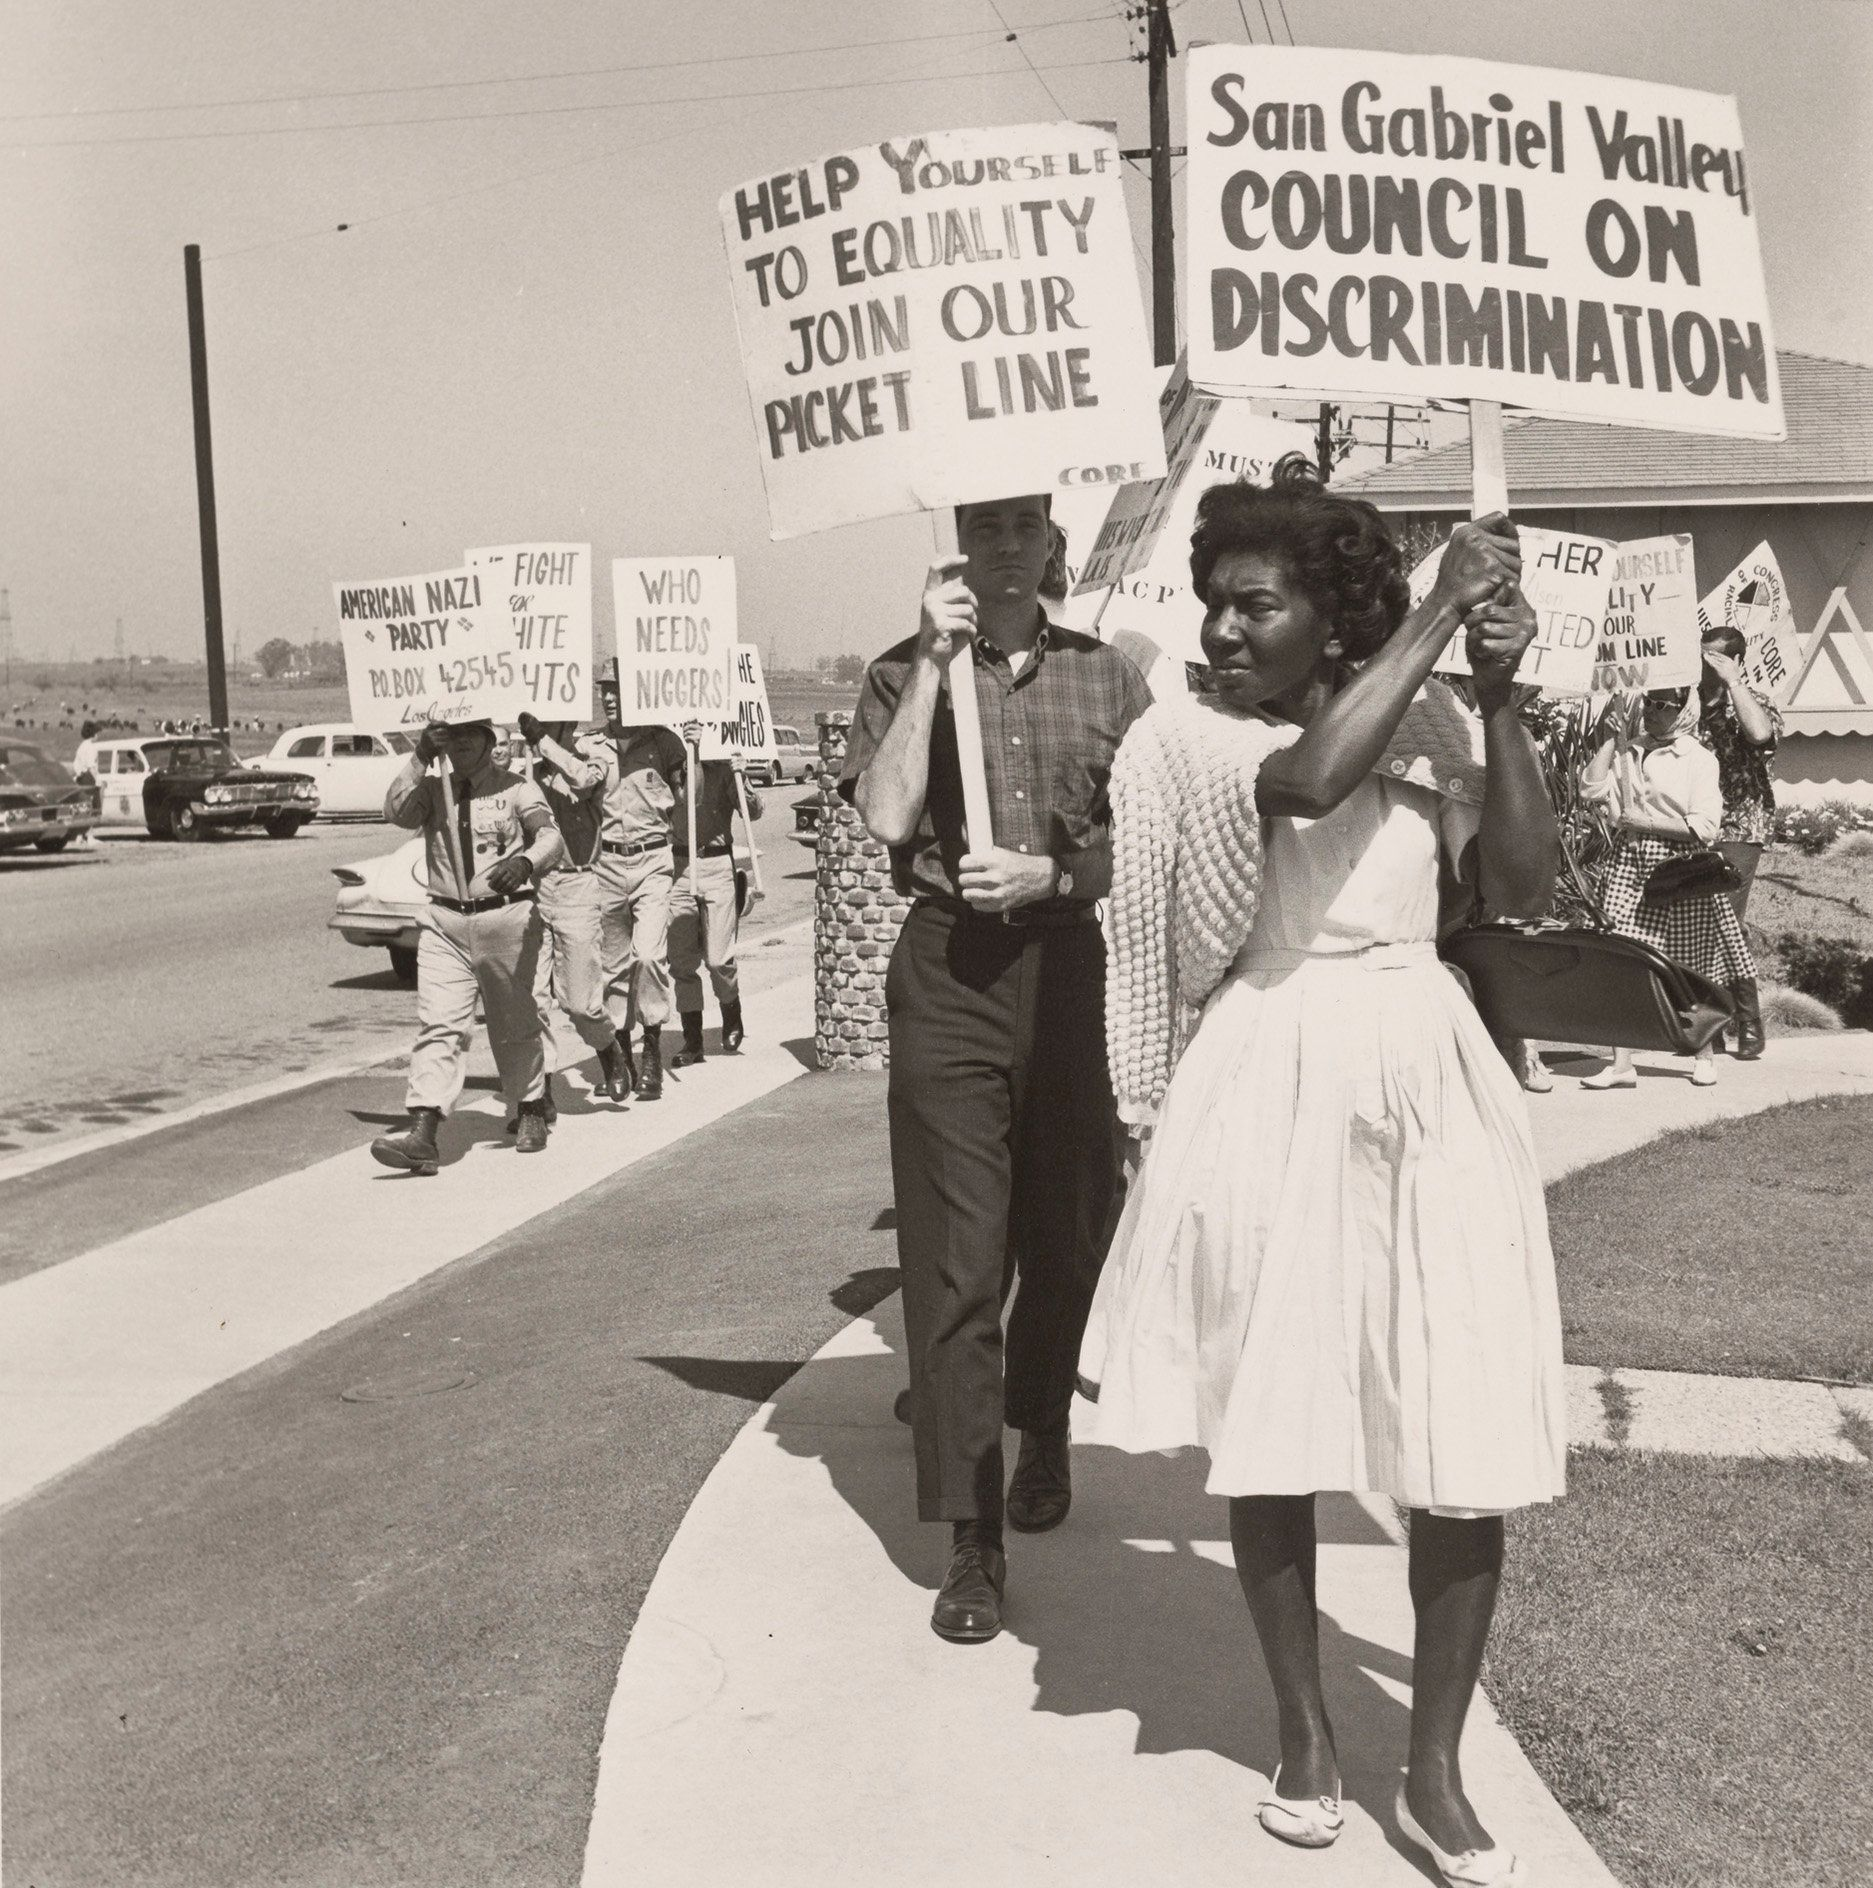 A photo of civil rights advocates picketing next to the American Nazi Party put our country's current politics into sharp rel